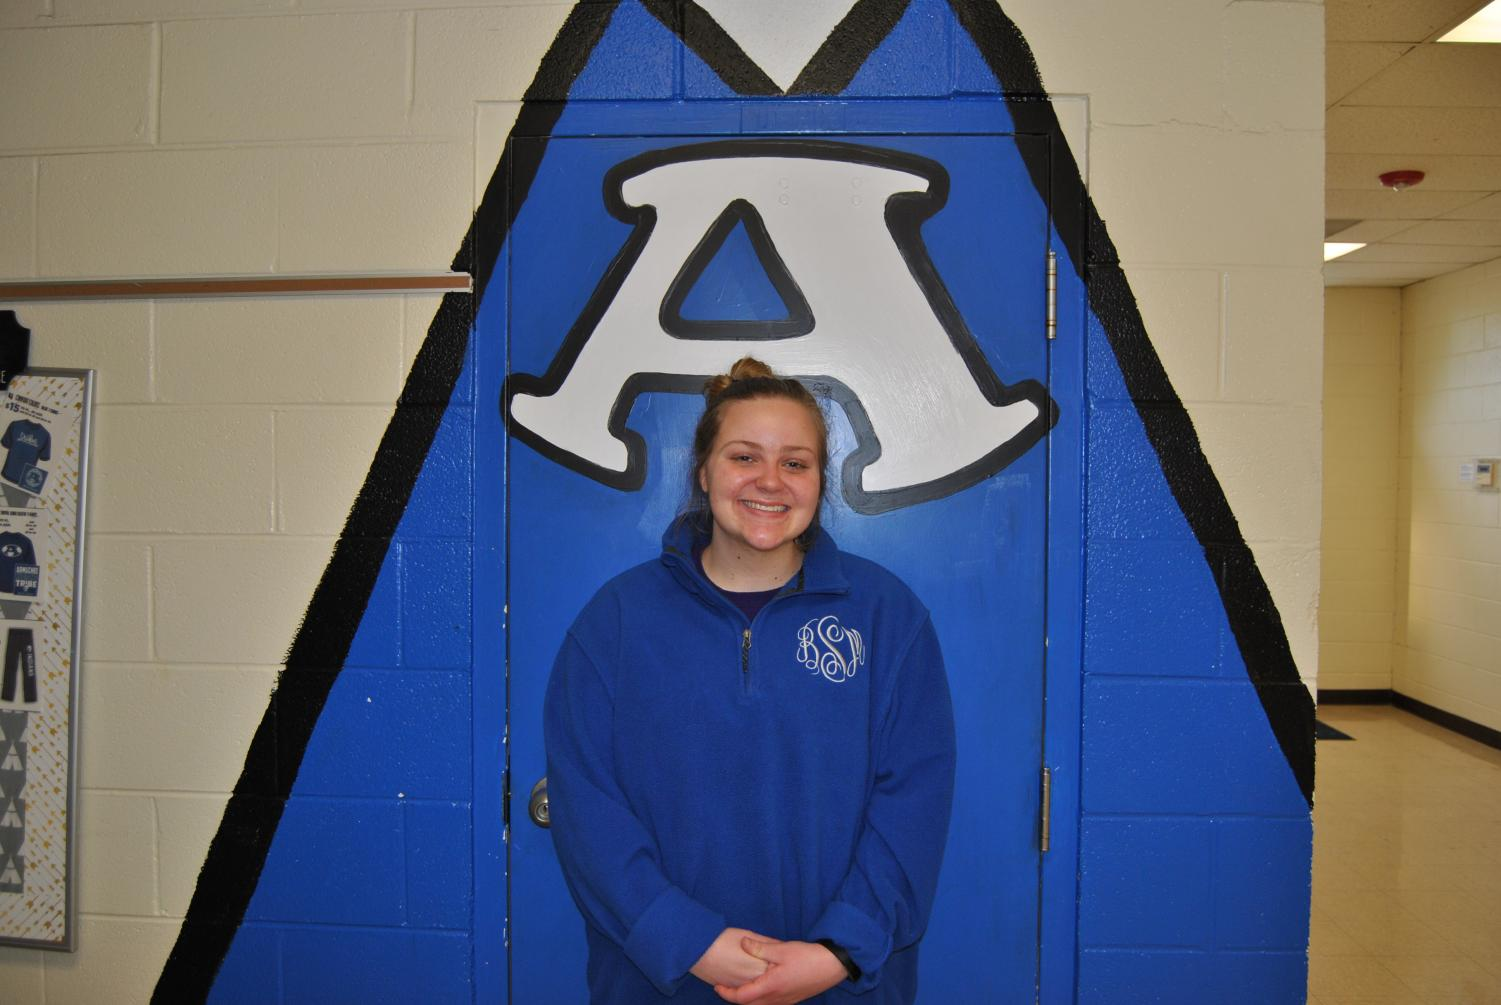 Bryson+Smith%2C+senior+at+AHS%2C+is+going+to+Berry+College+after+she+graduates.+Her+Father+works+there+and+her+Brother+attends+the+school.+Bryson+is+involved+with+volleyball%2C+yearbook%2C+key+club%2C+and+SADD+at+Armuchee.+Smith+said%2C+%E2%80%9CI%E2%80%99m+looking+forward+to+the+freedom+and+going+on+your+own+when+I+get+to+college.%E2%80%9D